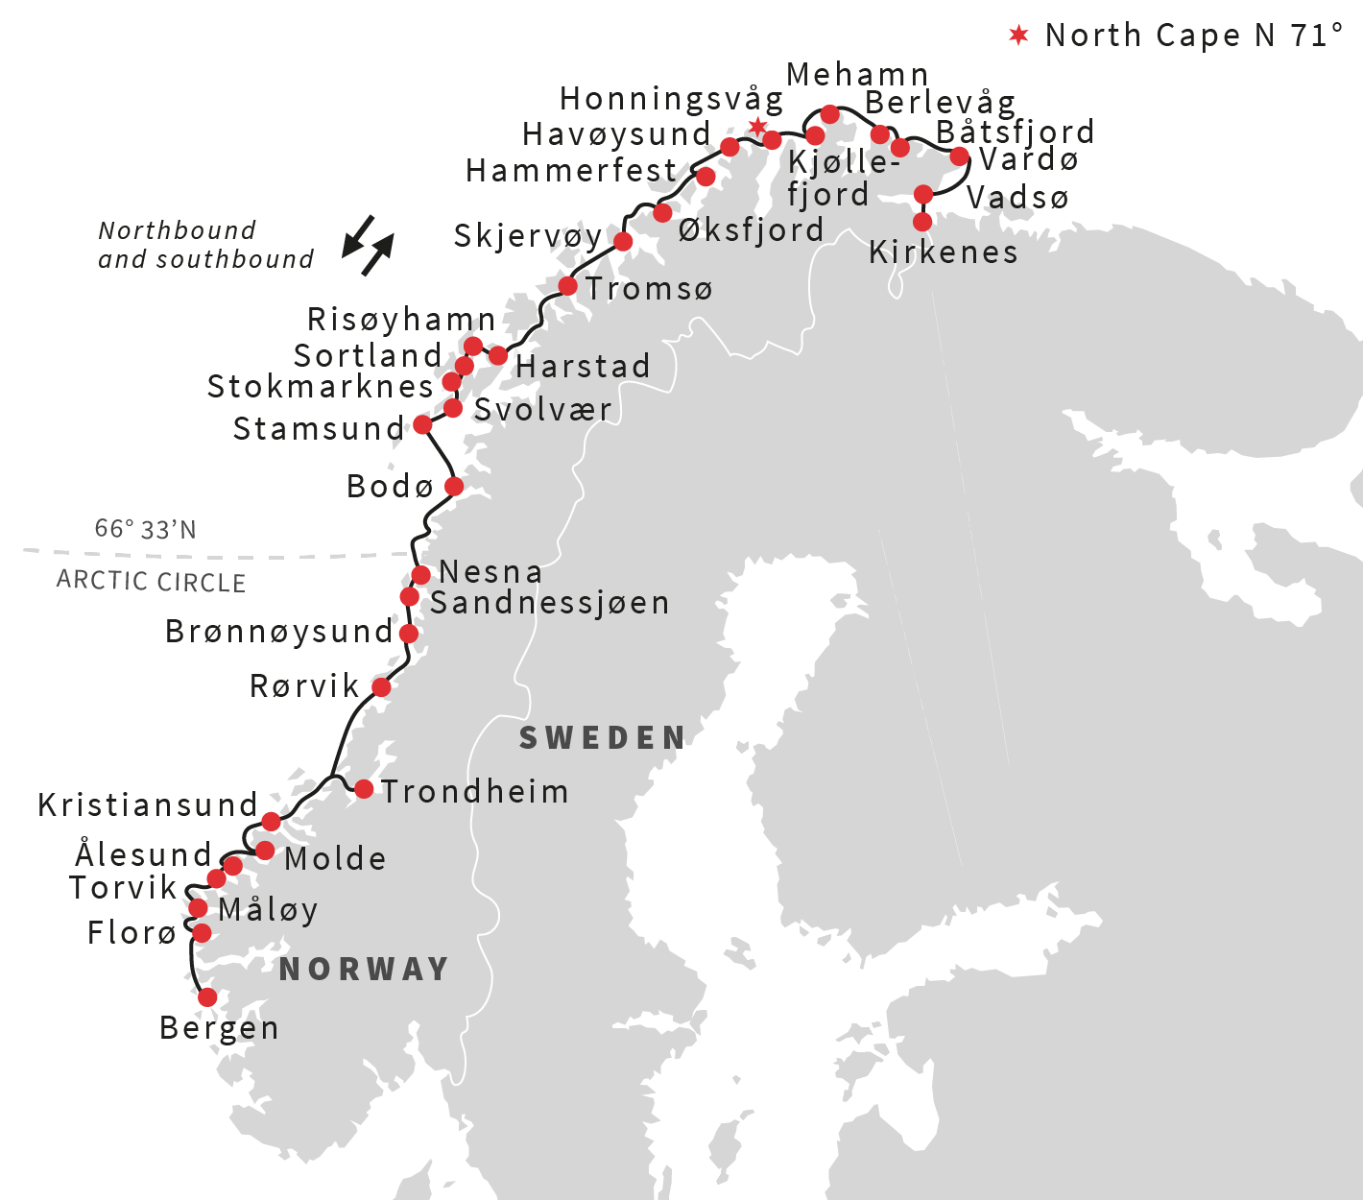 Hurtigruten 12 day voyage from Bergen via Kirkenes to Bergen